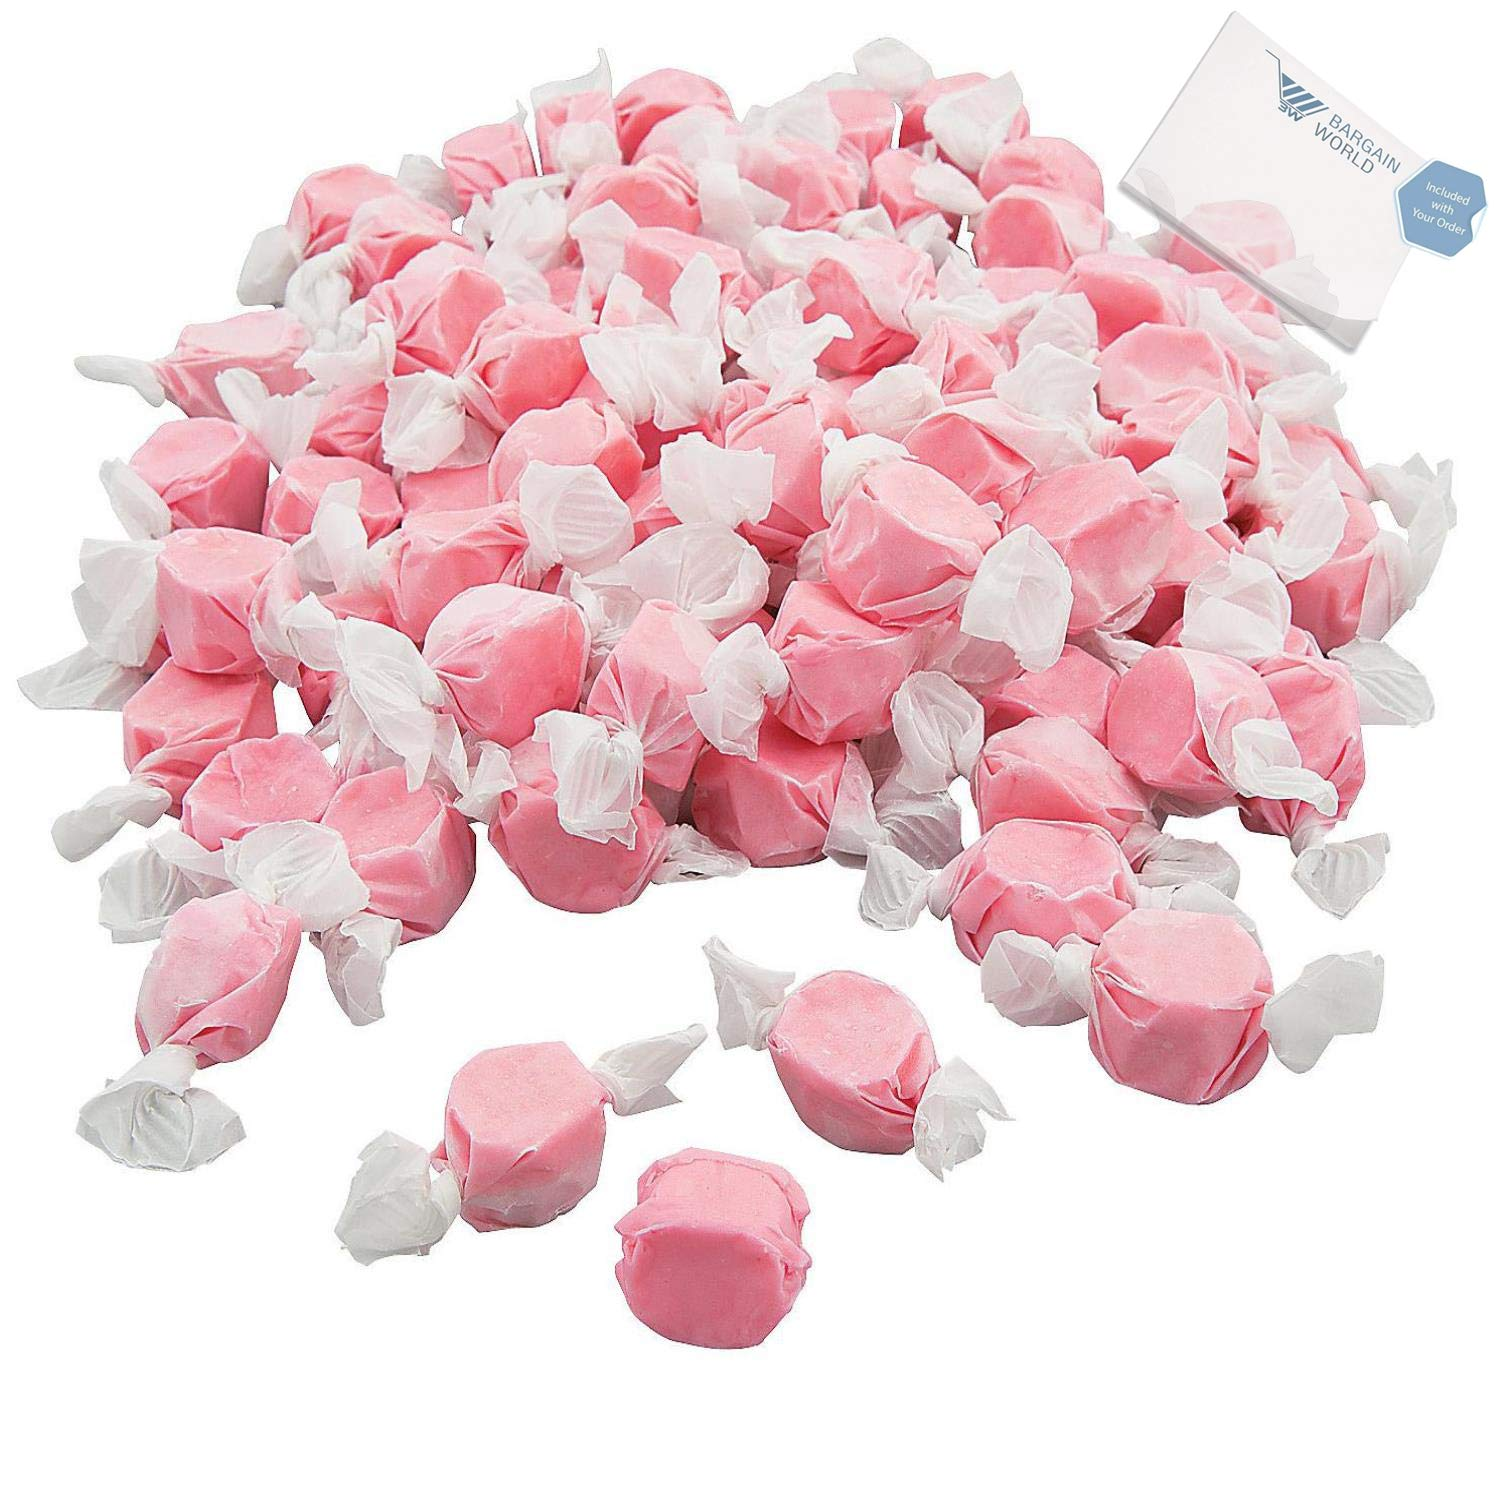 Bargain World Pink Salt Water Taffy (With Sticky Notes)